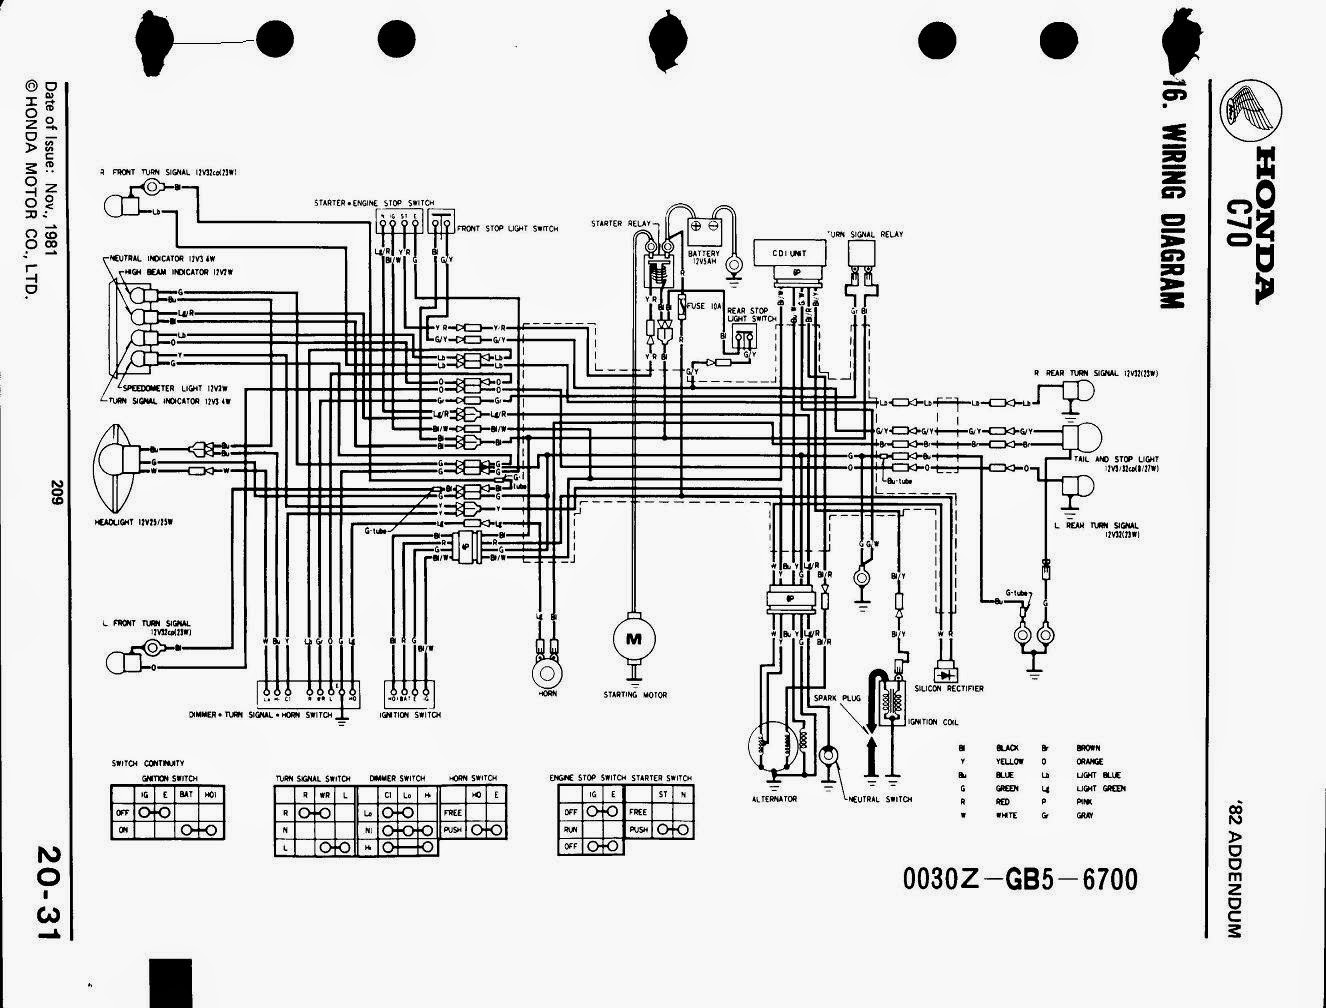 Incredible Honda Sl100 Wiring Diagram Best Place To Find Wiring And Datasheet Wiring 101 Vihapipaaccommodationcom